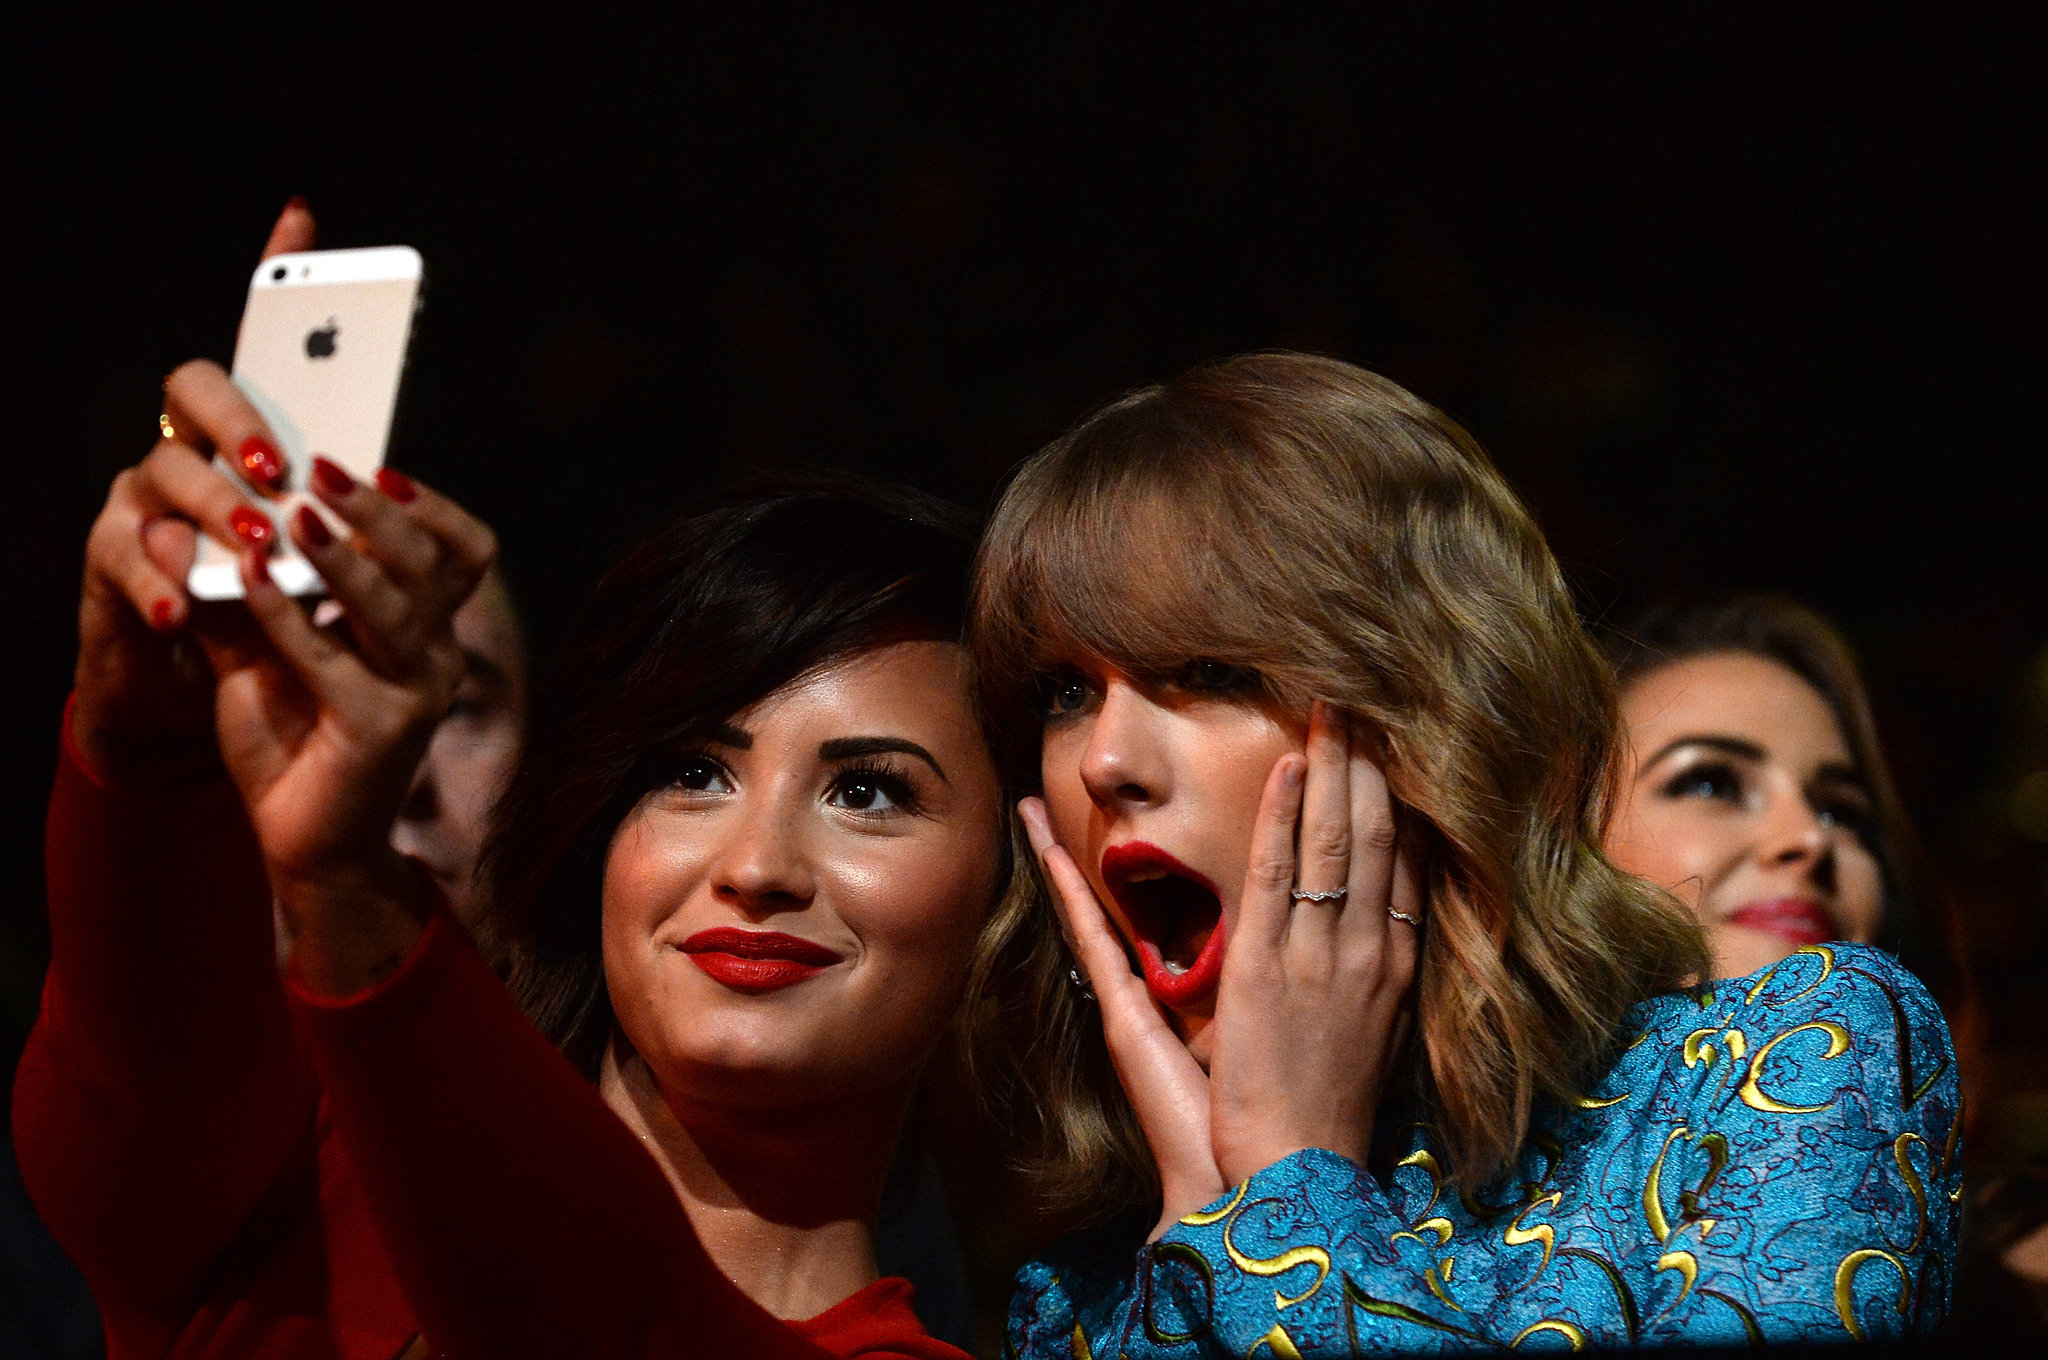 She took a surprised selfie with Demi Lovato at the MTV VMAs in August 2014.